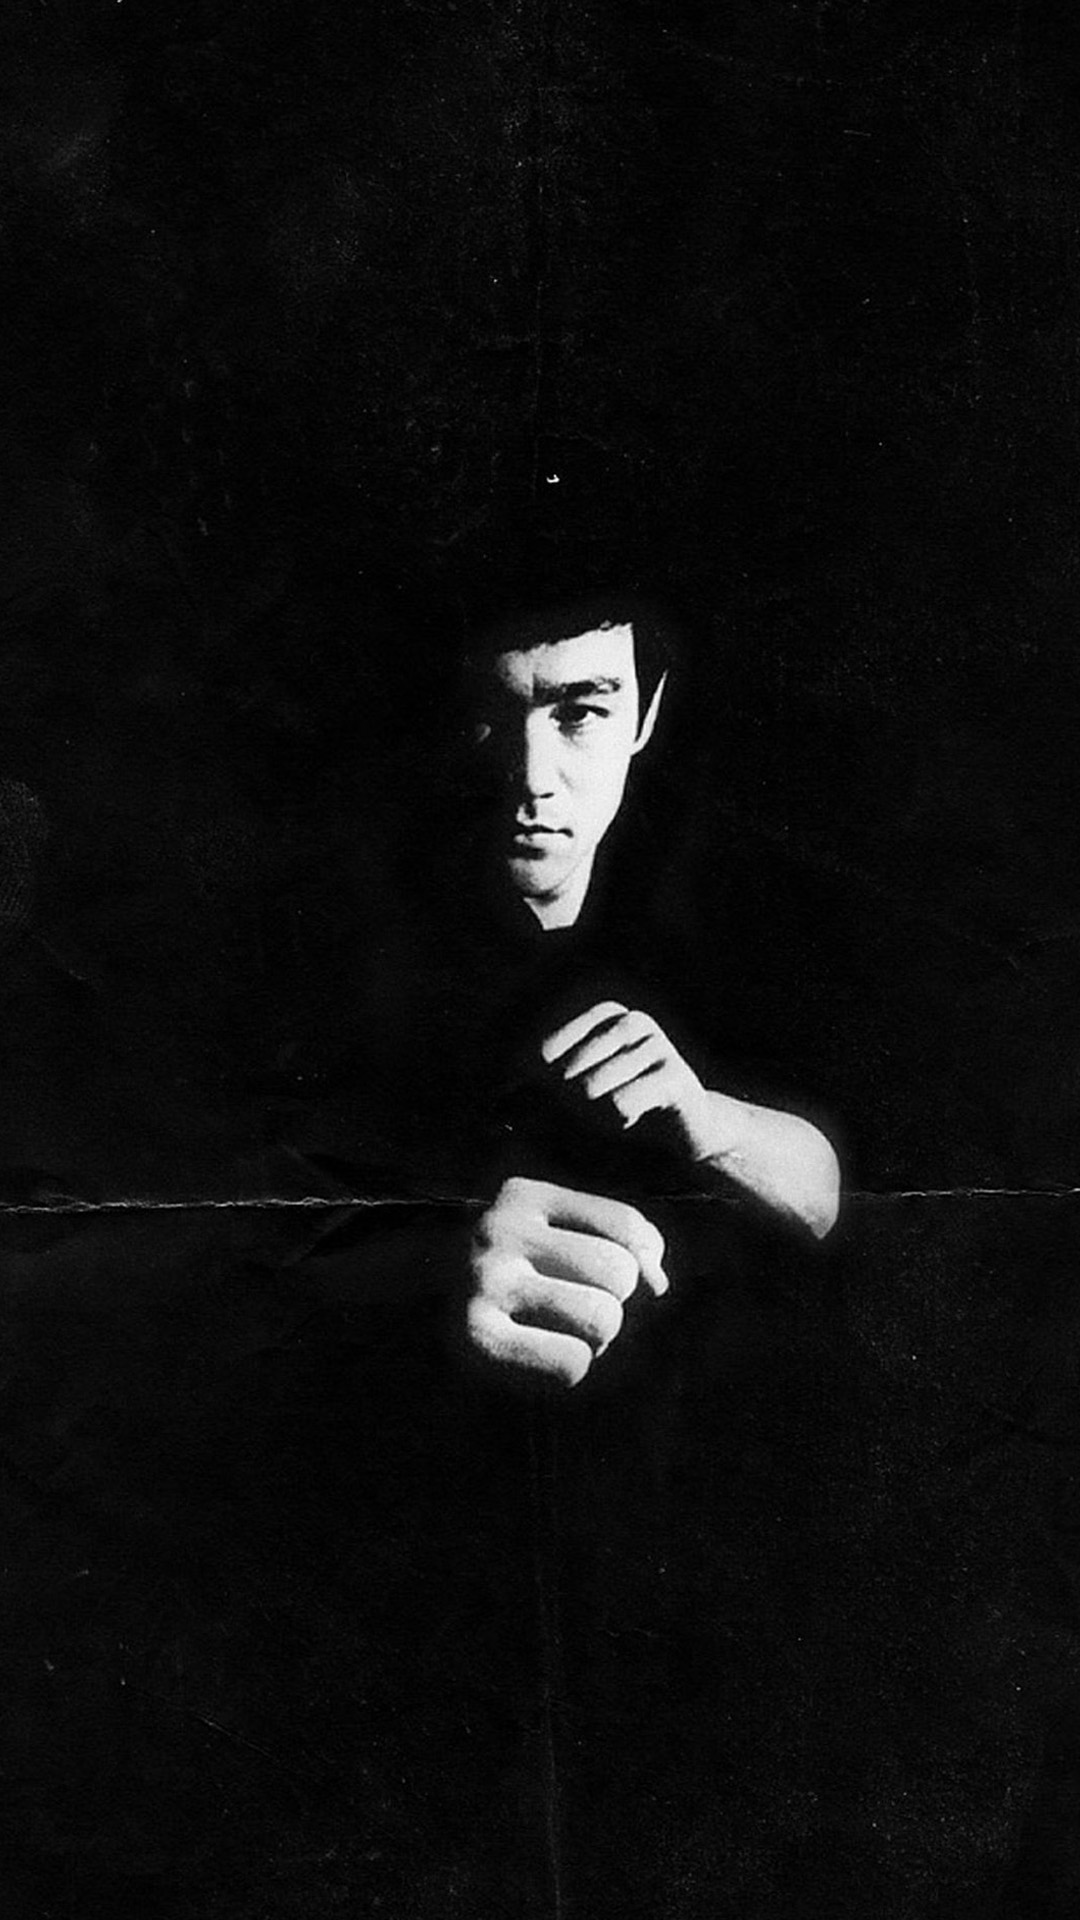 Bruce Lee Best Htc One Wallpapers Free And Easy To Download